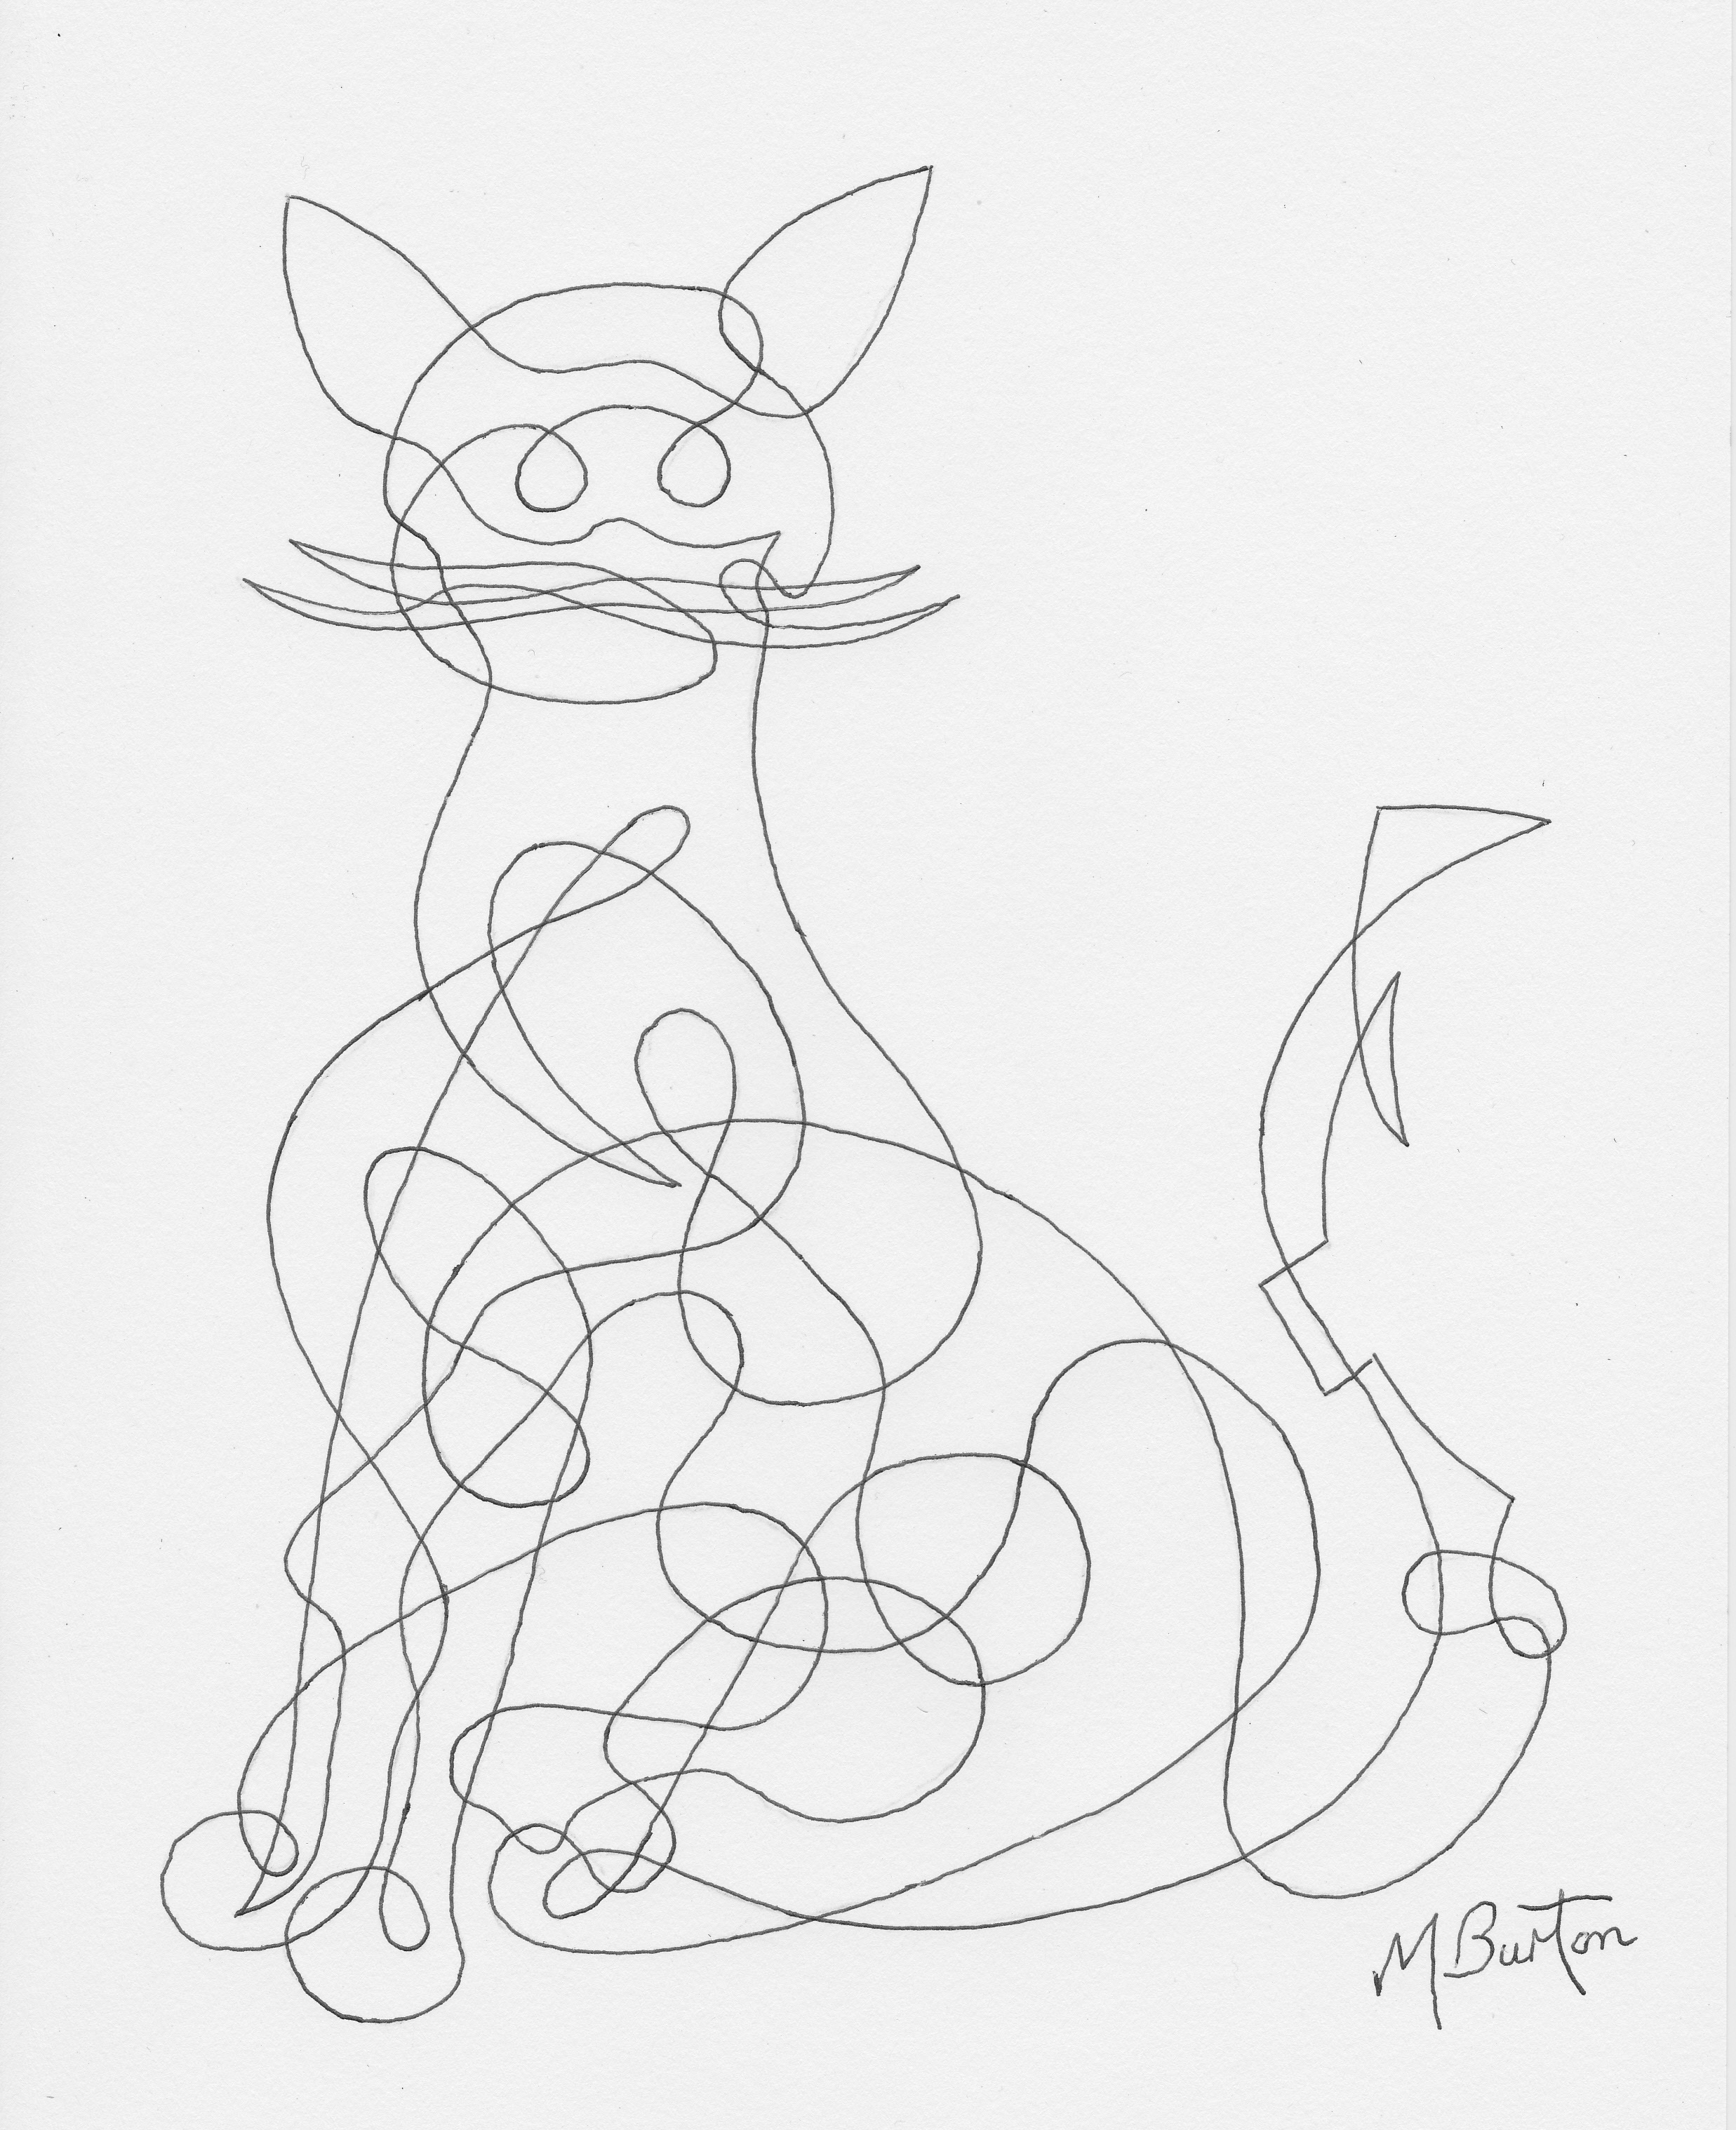 Continuous Line Drawing Of Animals : Mick burton continuous line drawing